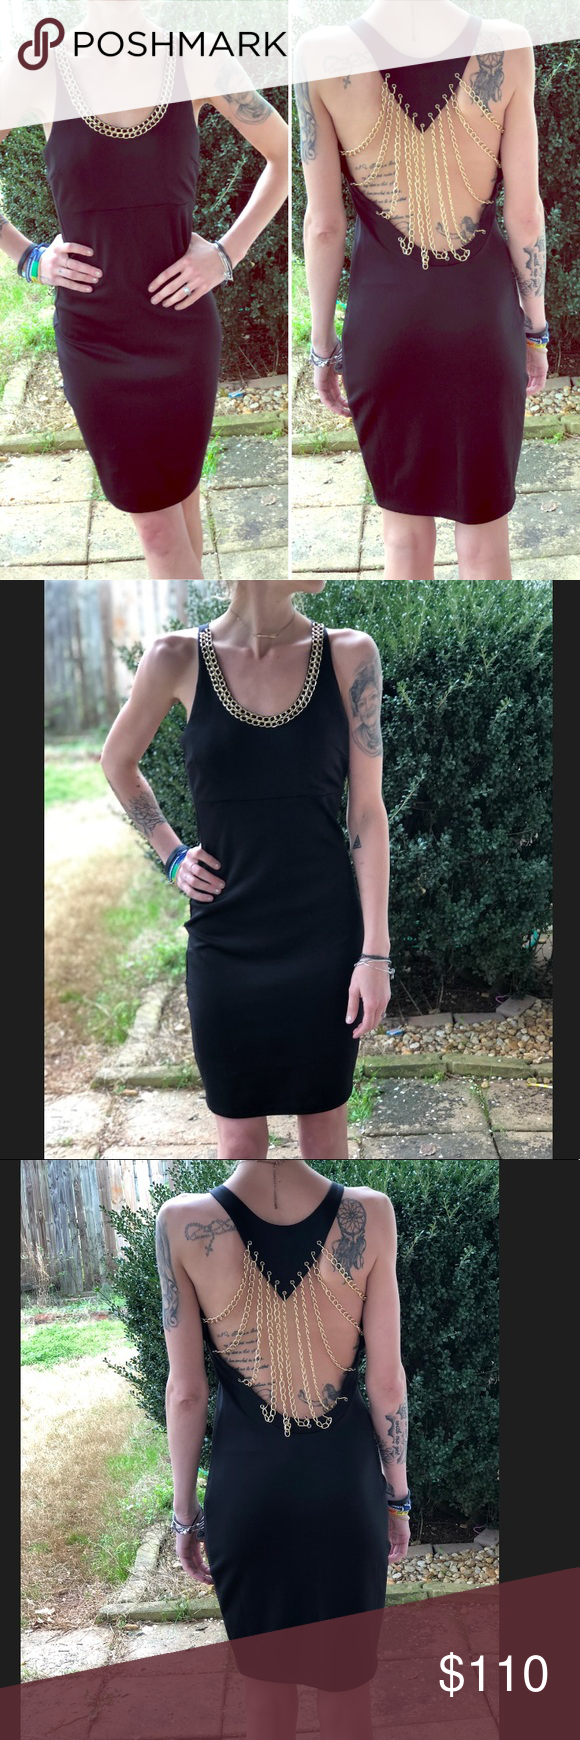 Sale Black Dress With Gold Accent Chains Nwot Absolutely Stunning Black Dress With Chains On The Back Of The Dress What S Clothes Design Fashion Clothes [ 1740 x 580 Pixel ]